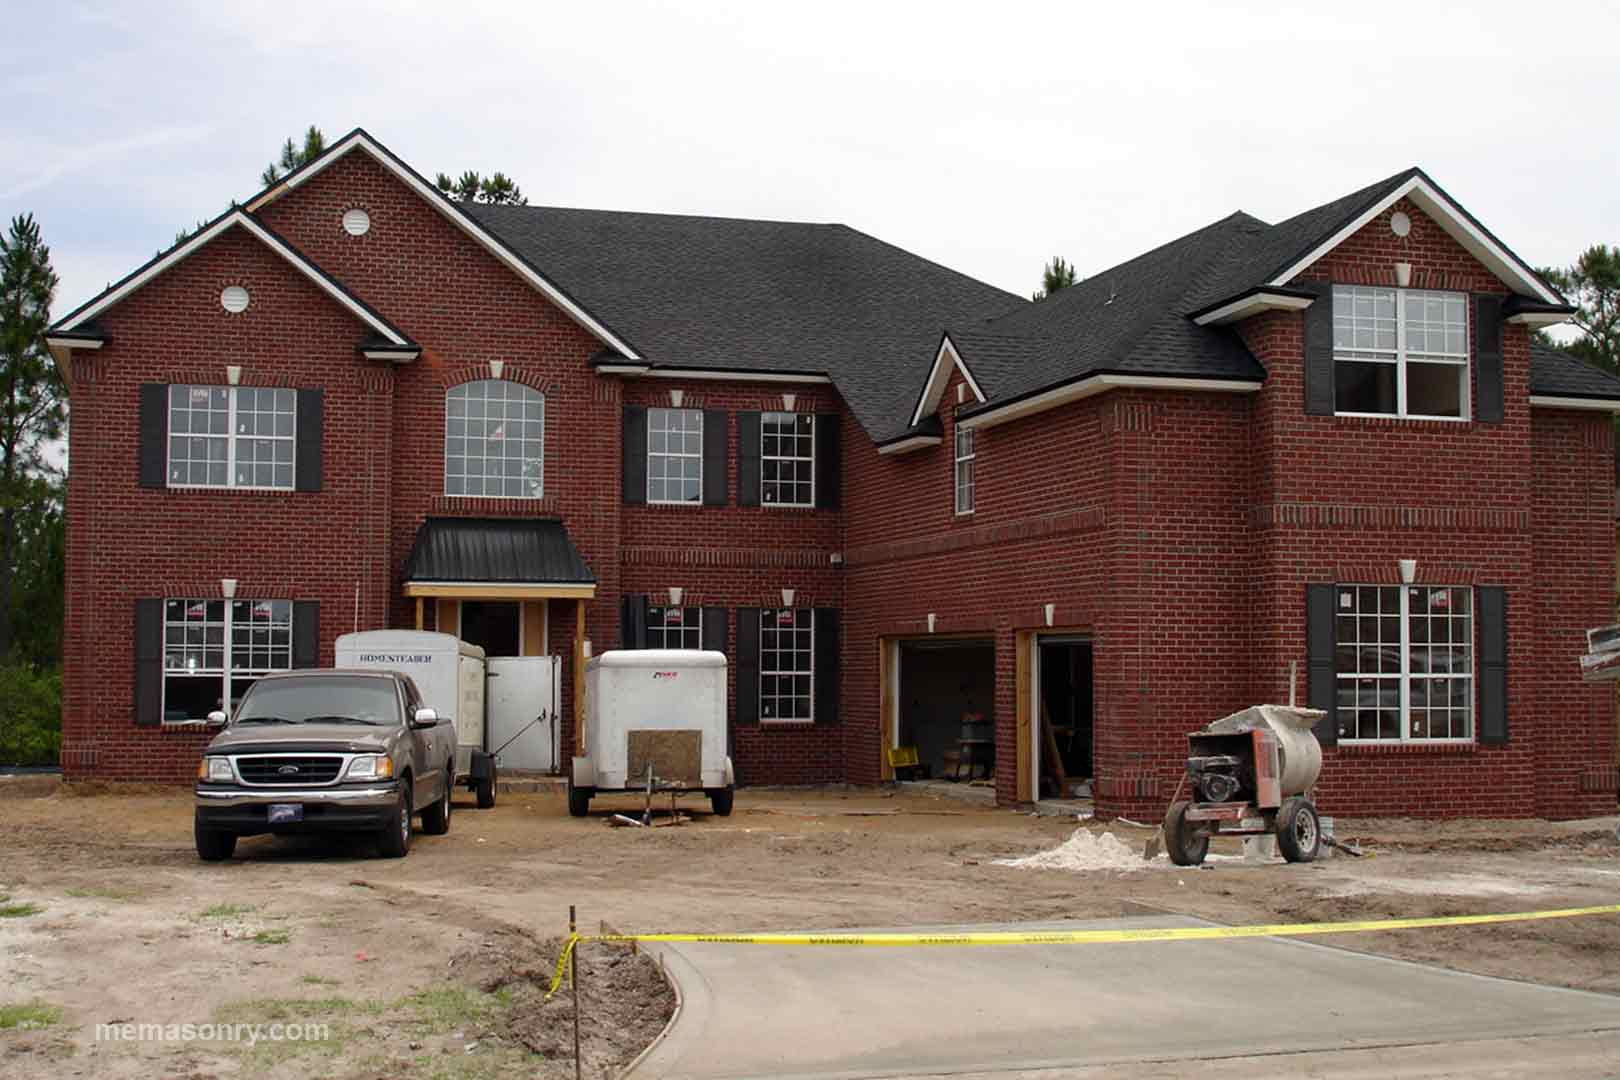 M&E Masonry & Sons brick house project